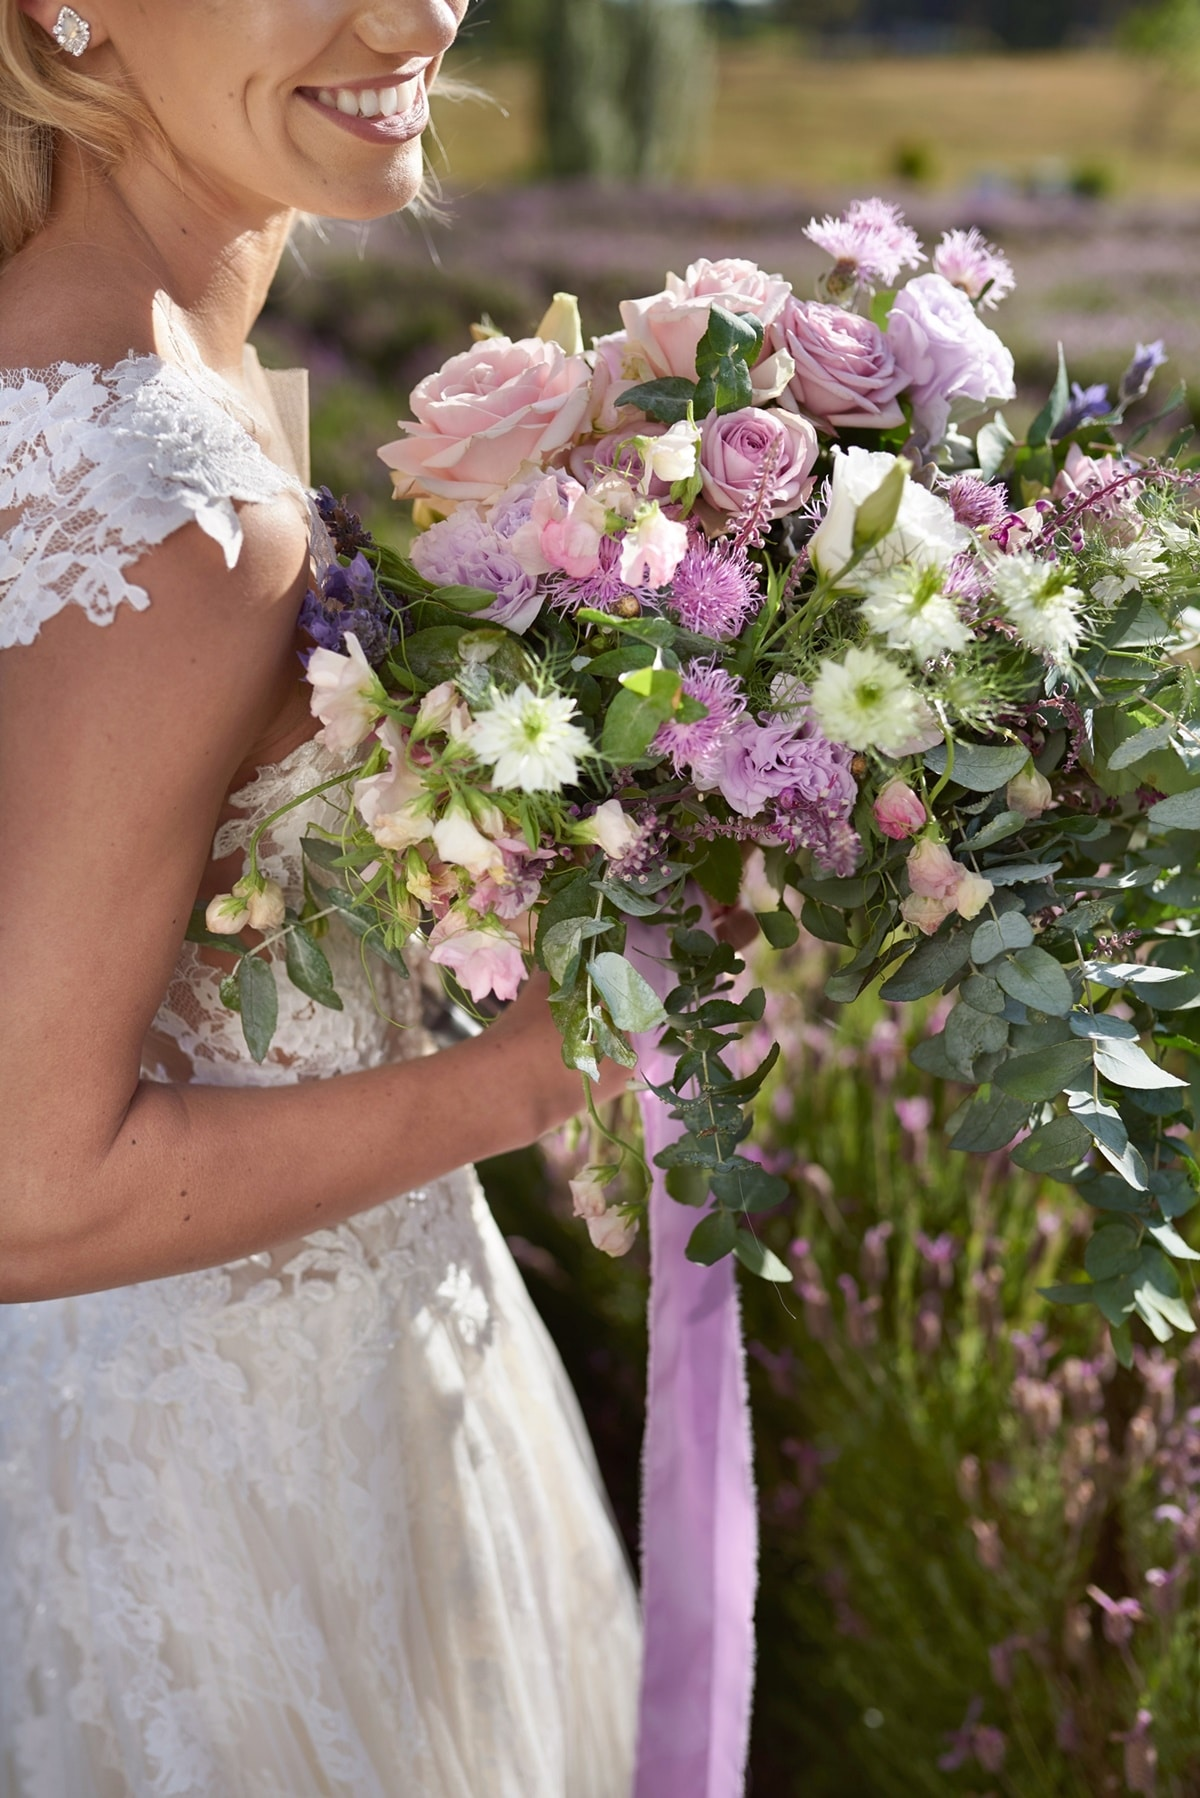 Sping bridal bouquet with lavender and roses